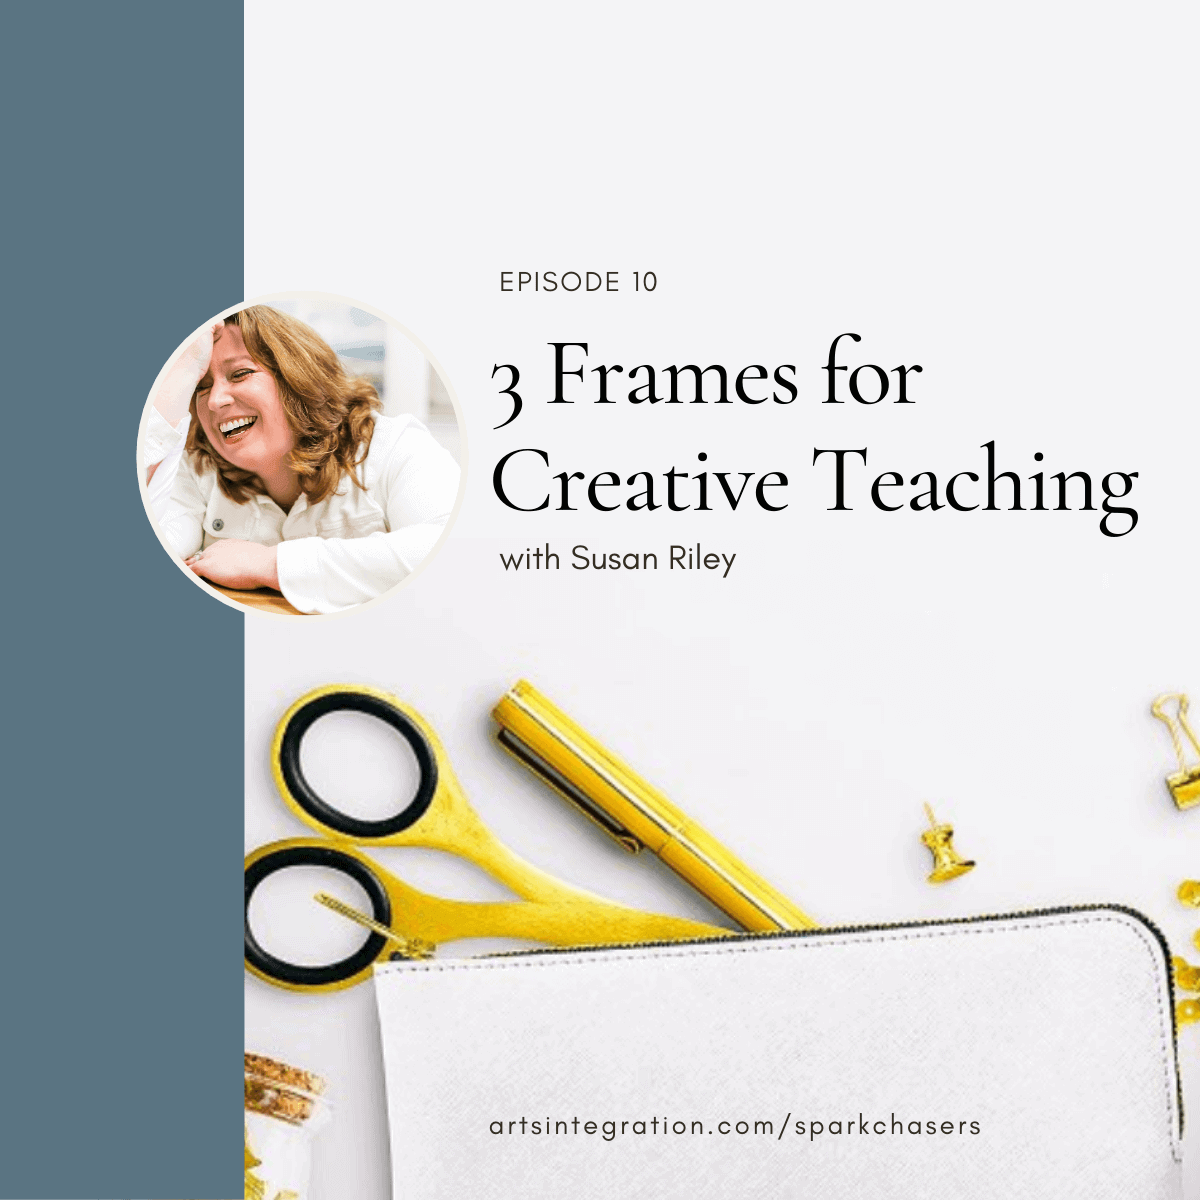 3 Frames for Creative Teaching Sparkchasers Podcast Episode 10